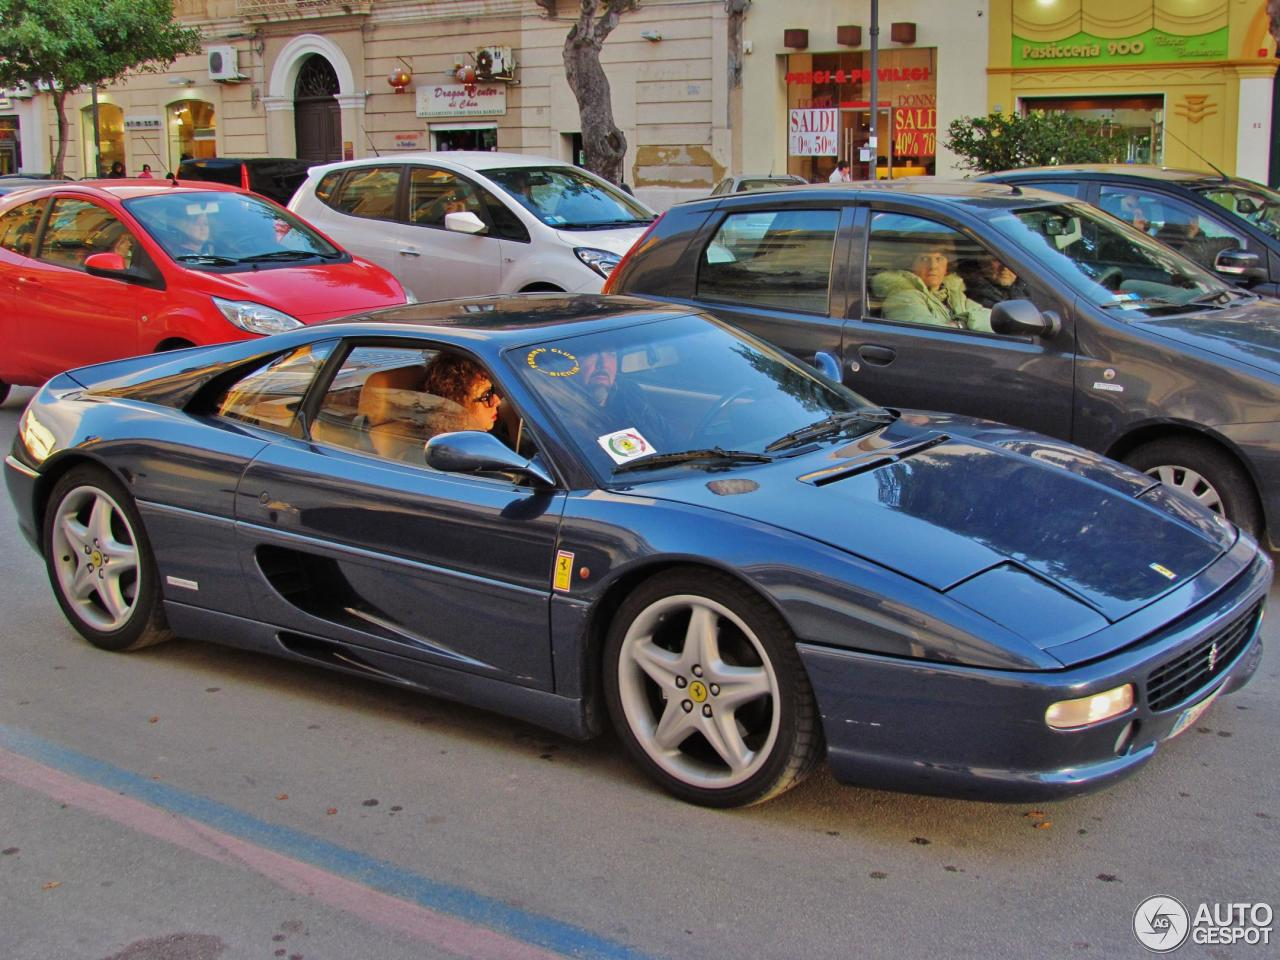 Ferrari F355 Berlinetta 24 February 2014 Autogespot